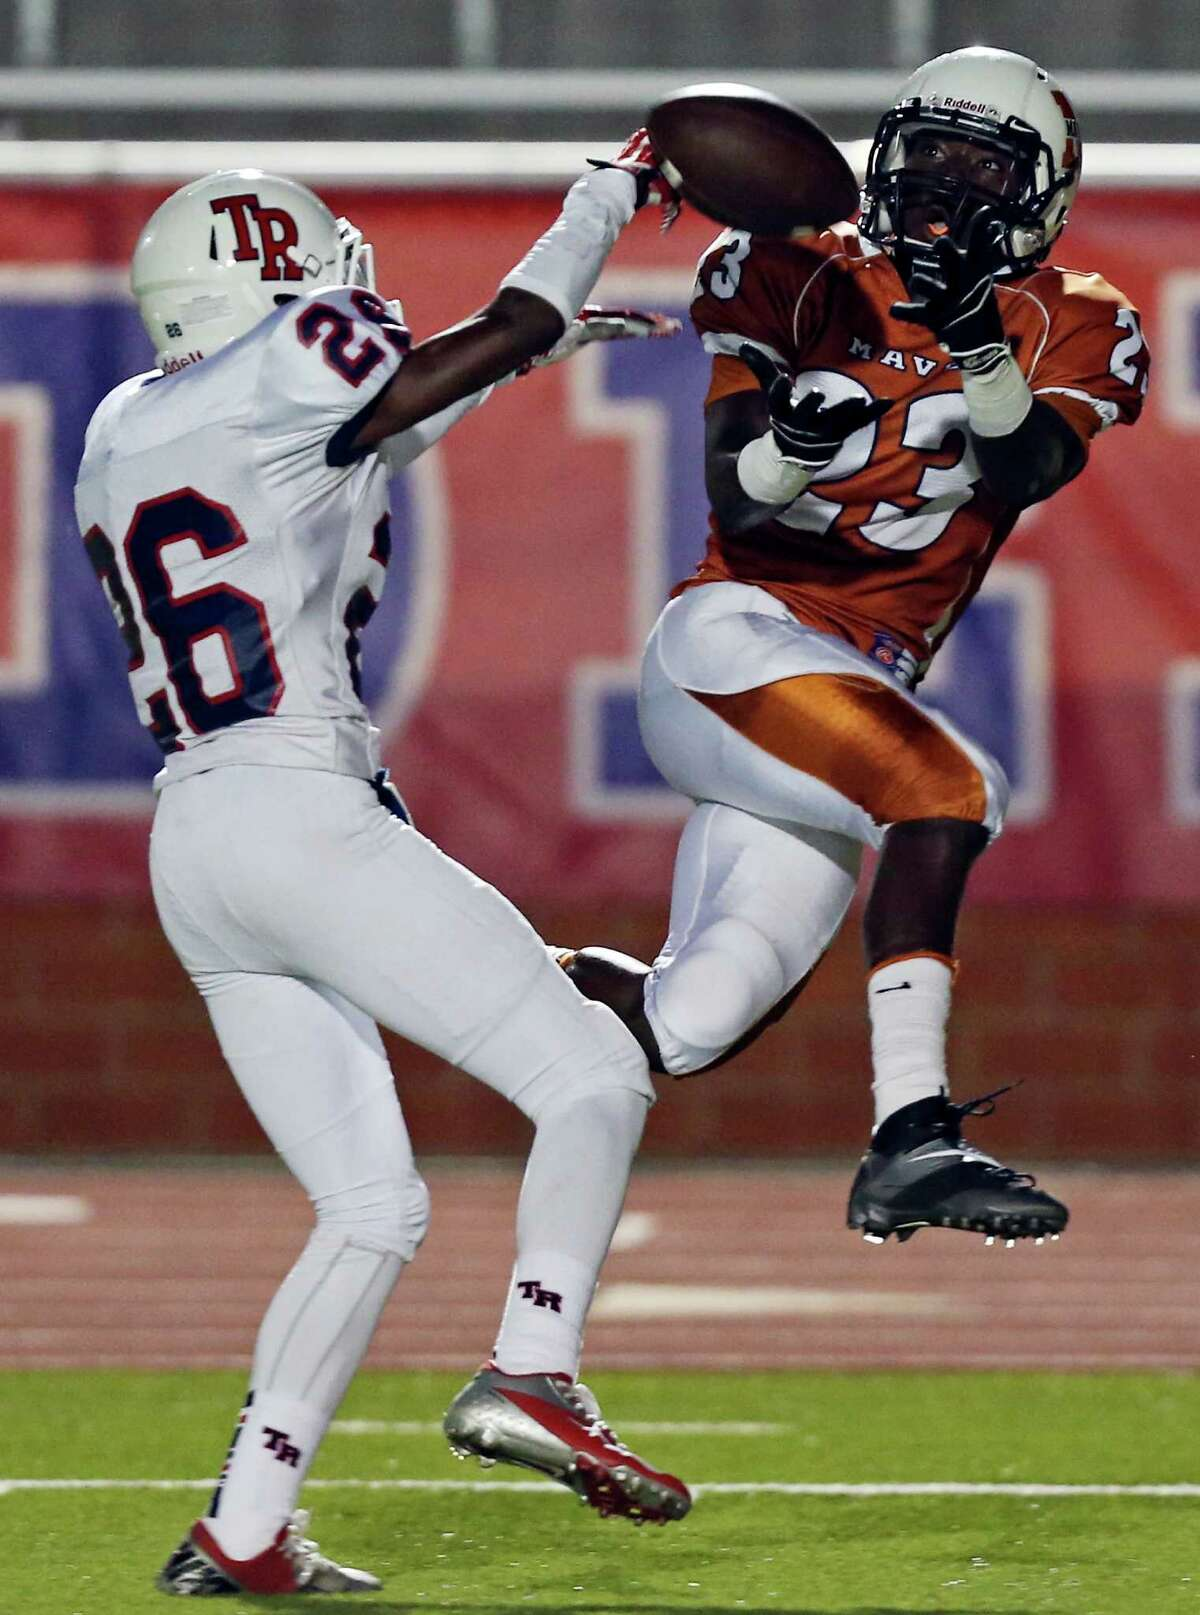 Madison's Ja'Michael Brown goes up for a pass as he is defended by Roosevelt's Will Porter during first half action Friday Oct. 4, 2013 at Heroes Stadium. The pass was incomplete.